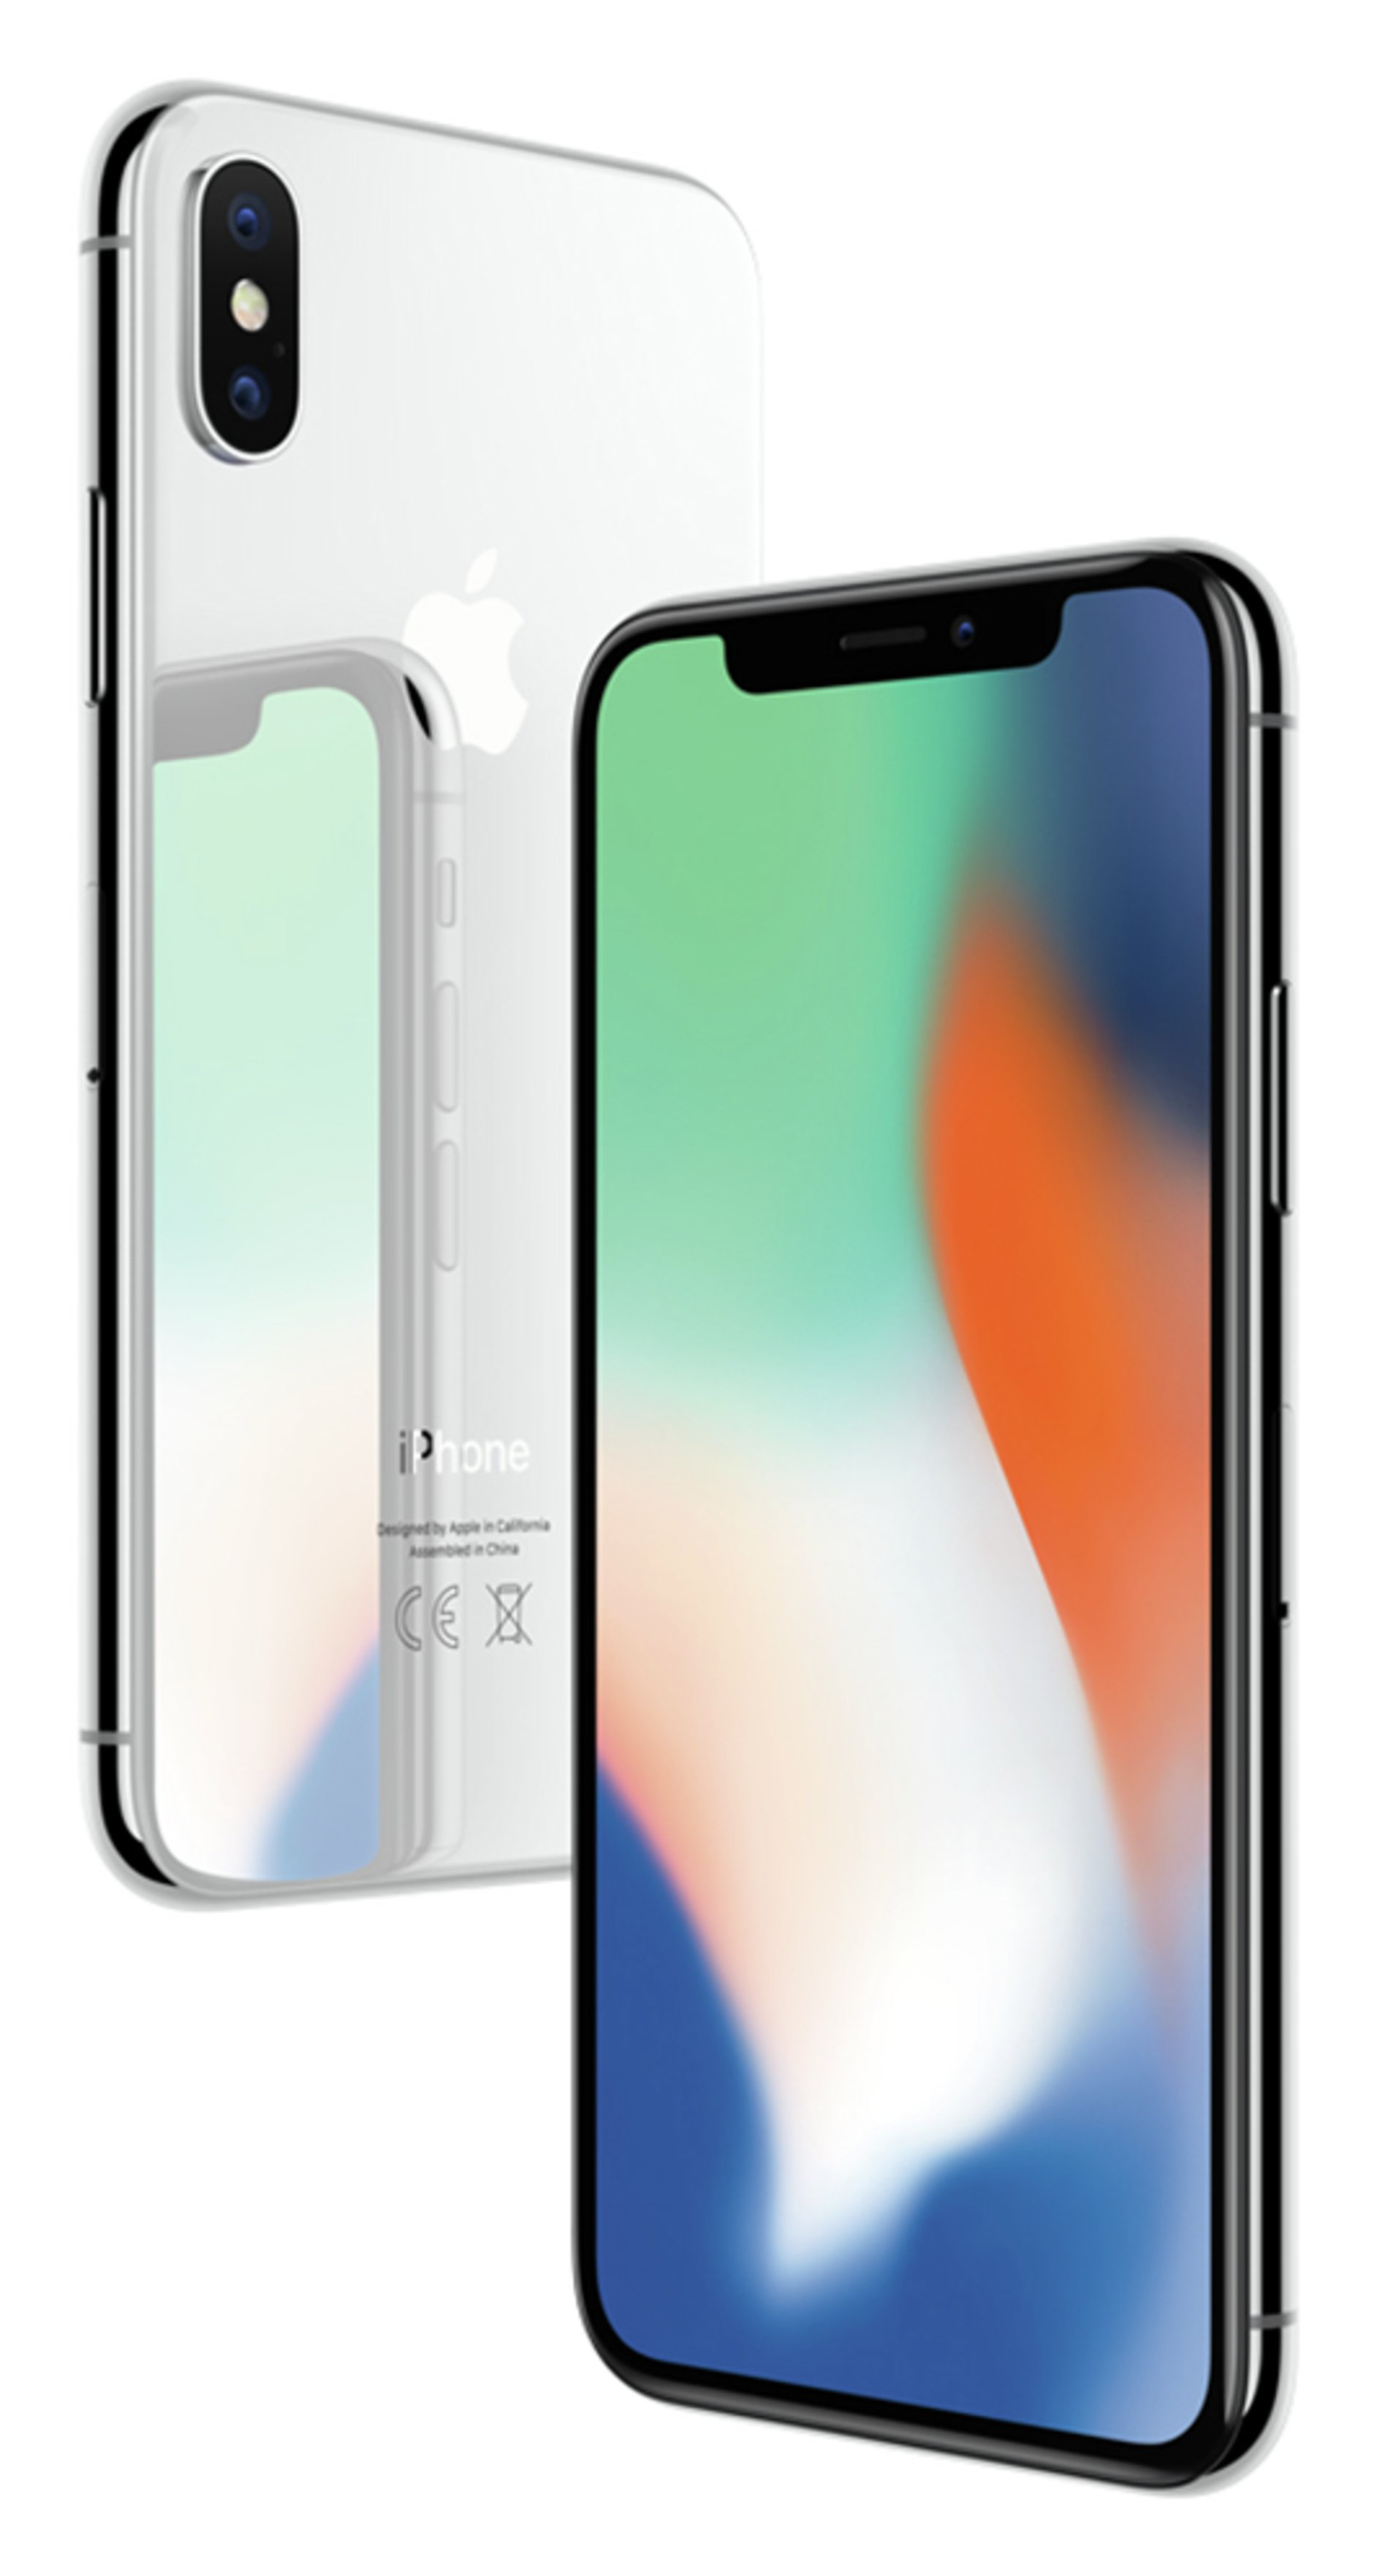 Apple Sim Free iPhone X 64GB Mobile Phone - Silver